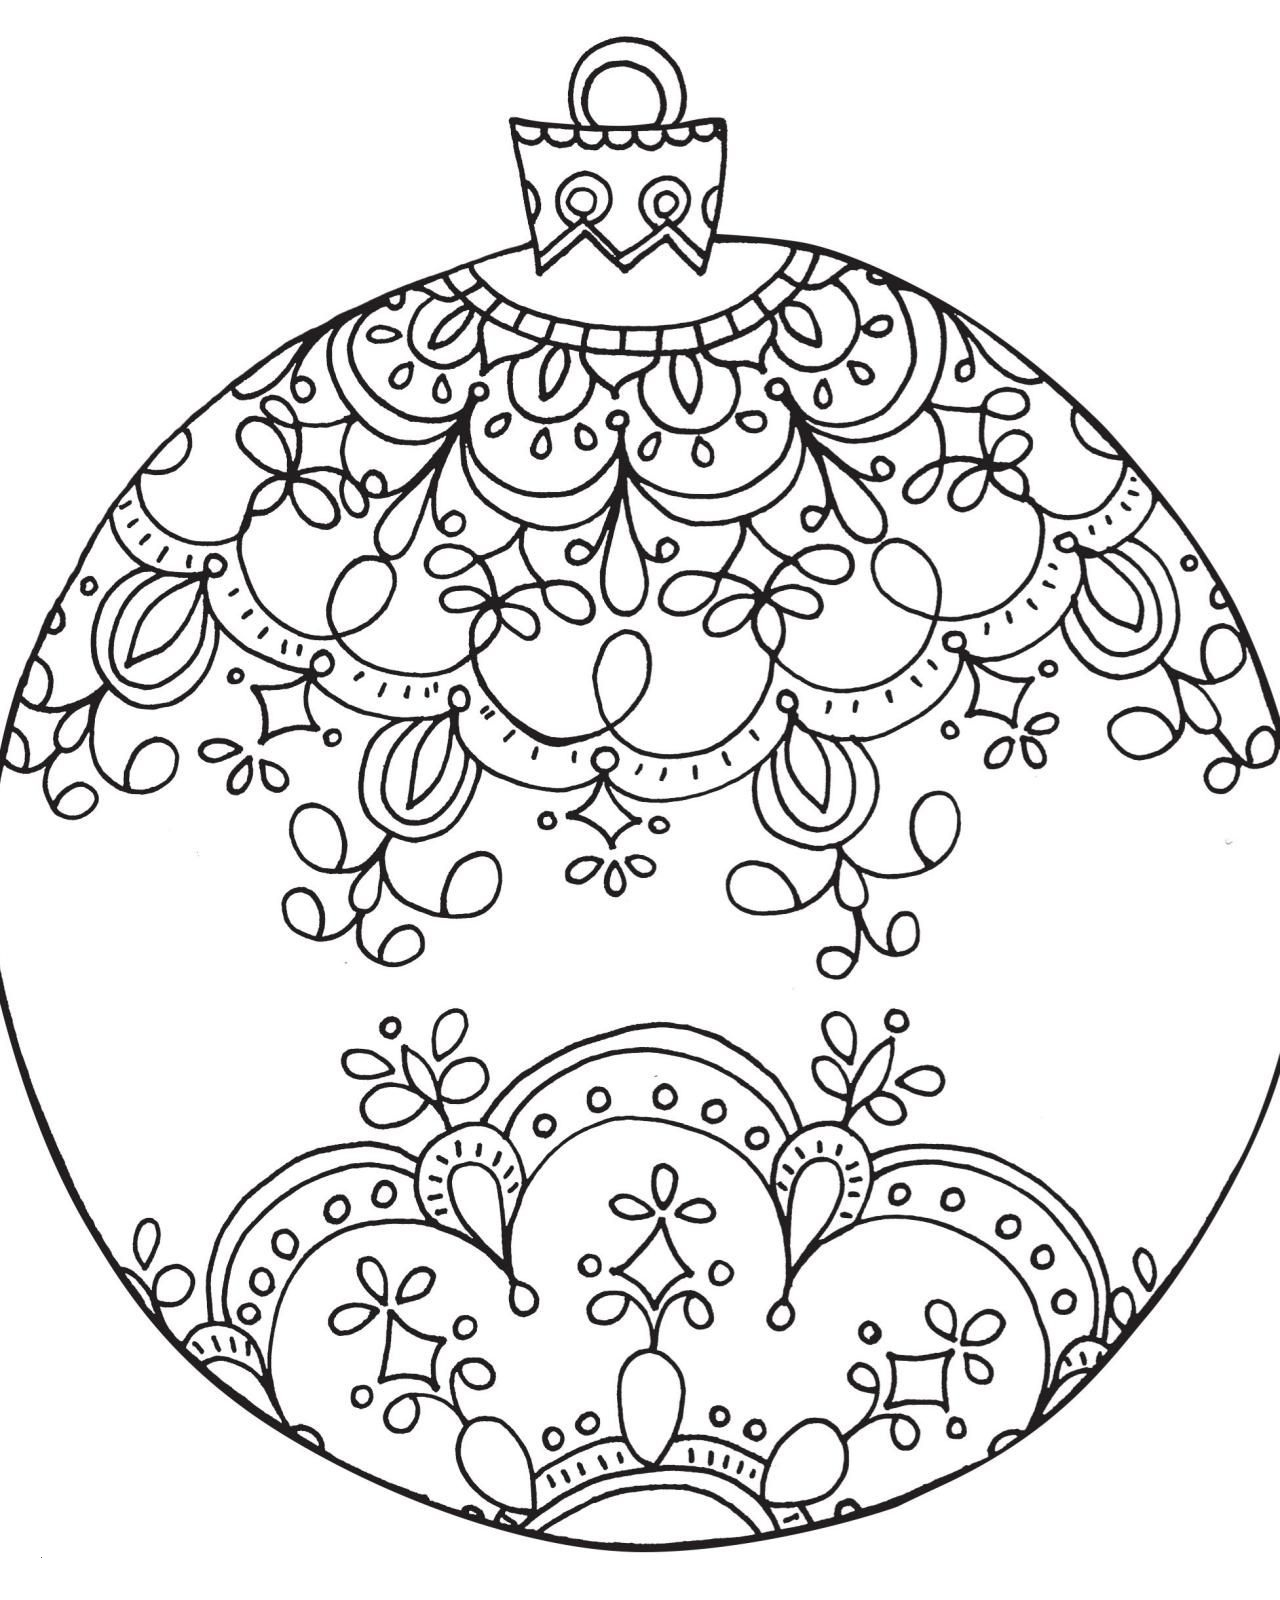 Mandala Coloring Pdf New Free Printable Coloring Pages For Adults - Free Printable Mandalas Pdf